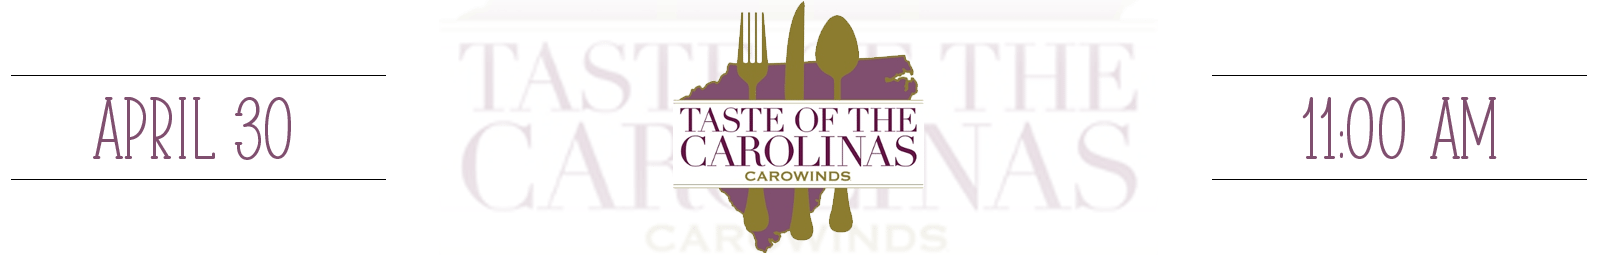 Taste Of The Carolinas